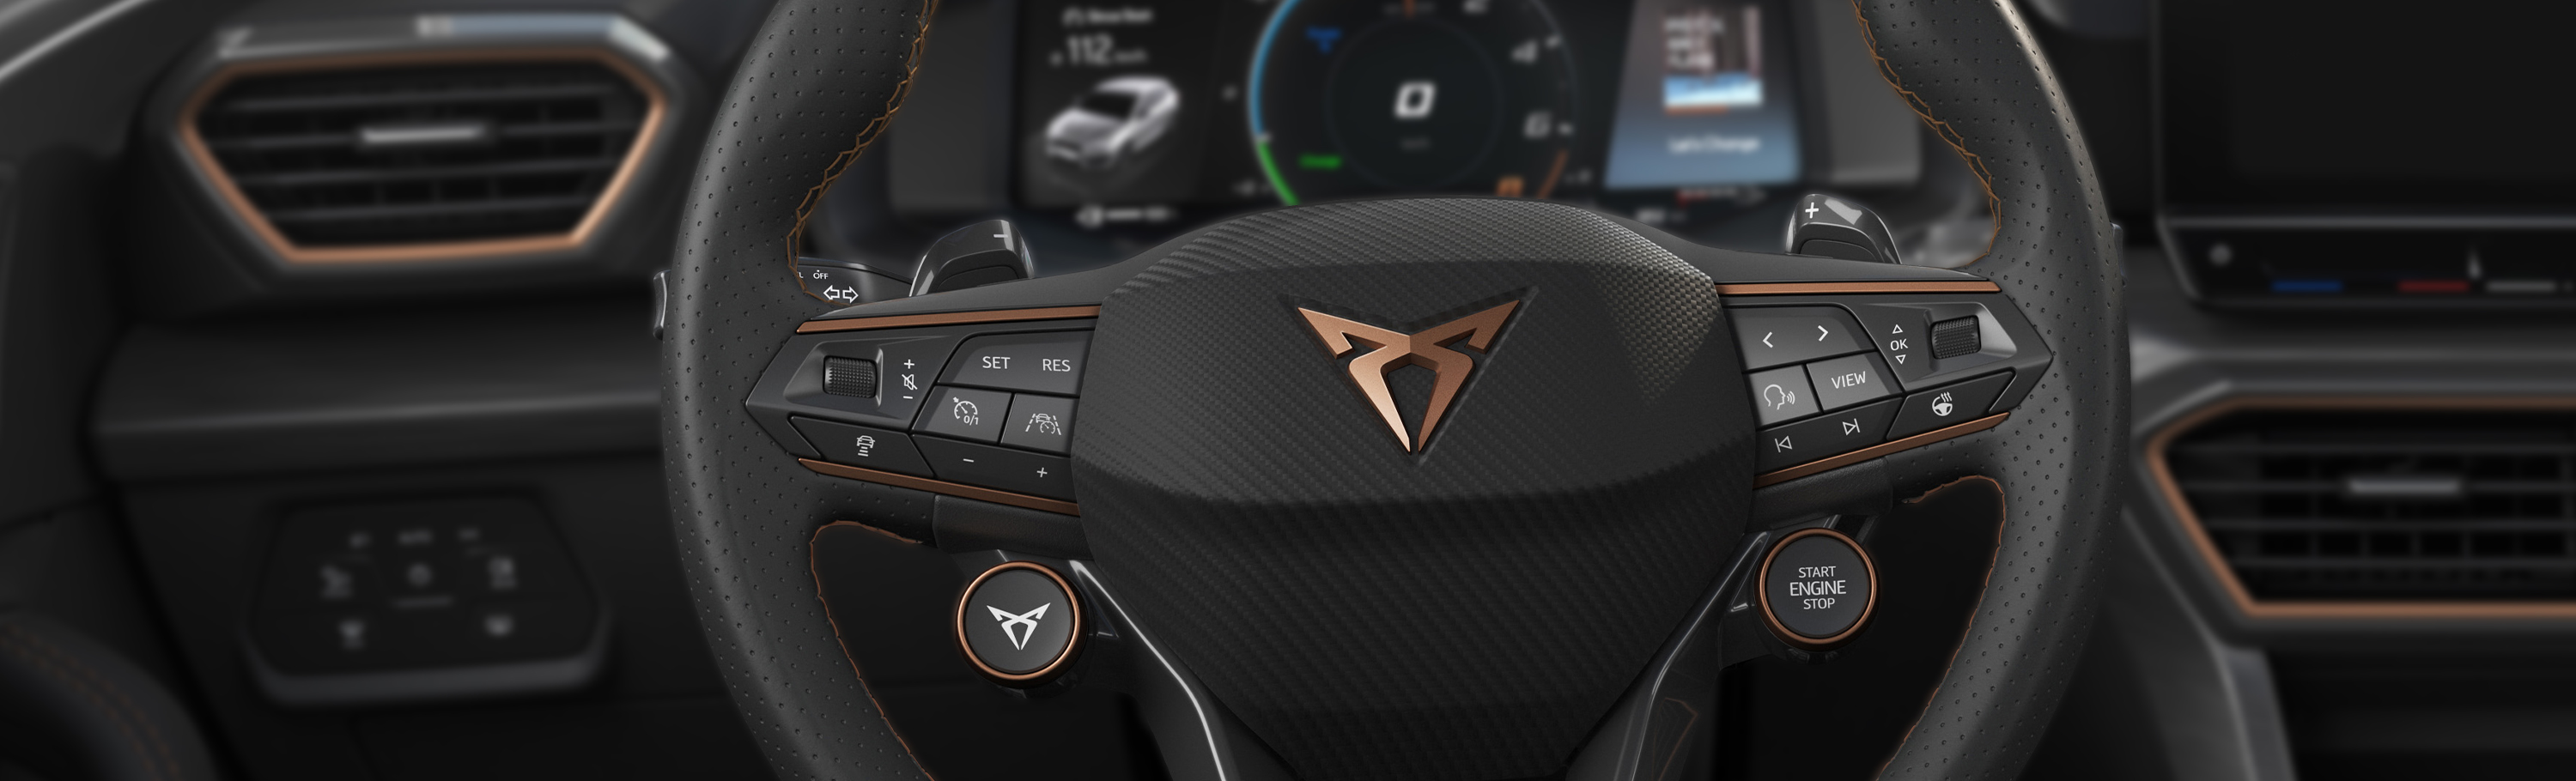 Automotive, Steering wheel, Switches, Cockpit, Control elements, Multifunctional switches